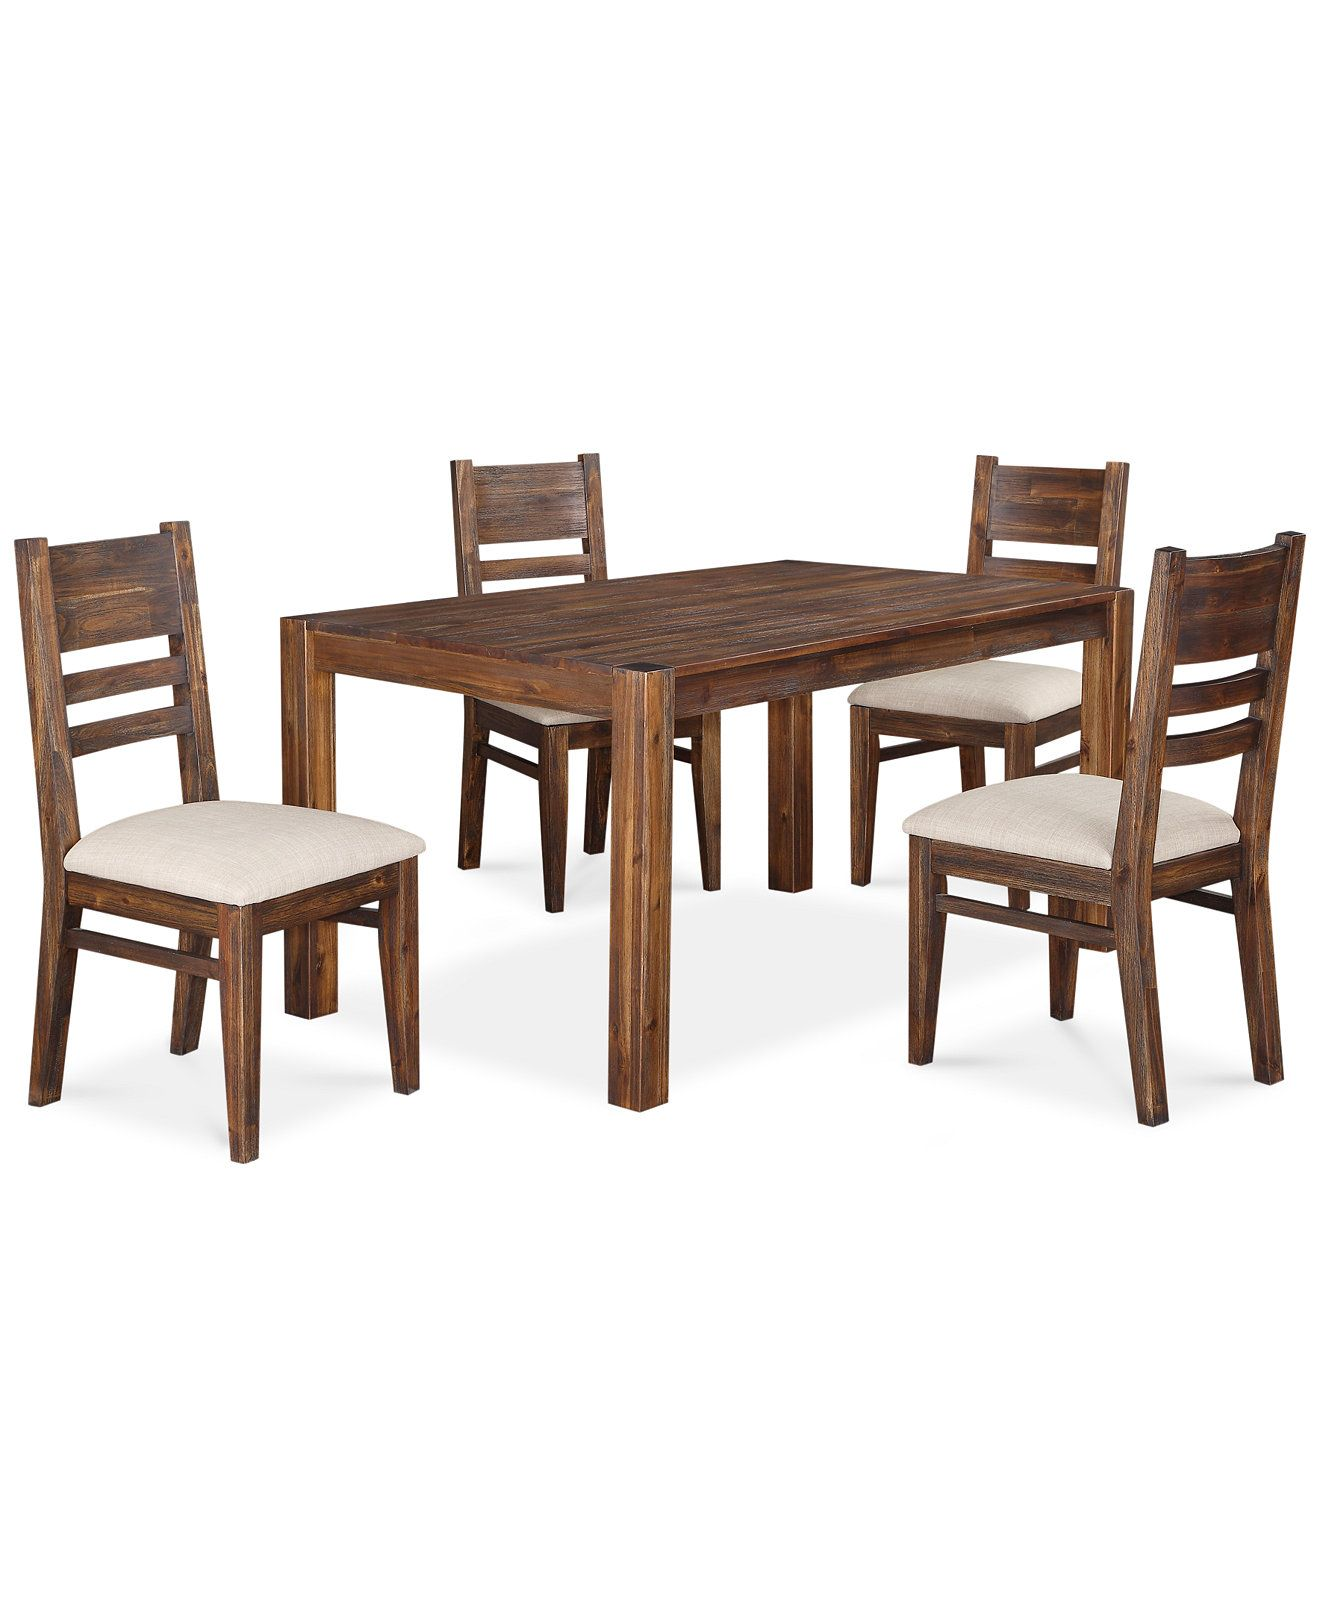 Esszimmermöbel Set Avondale 5 Pc Dining Room Set Created For Macy S 60 Dining